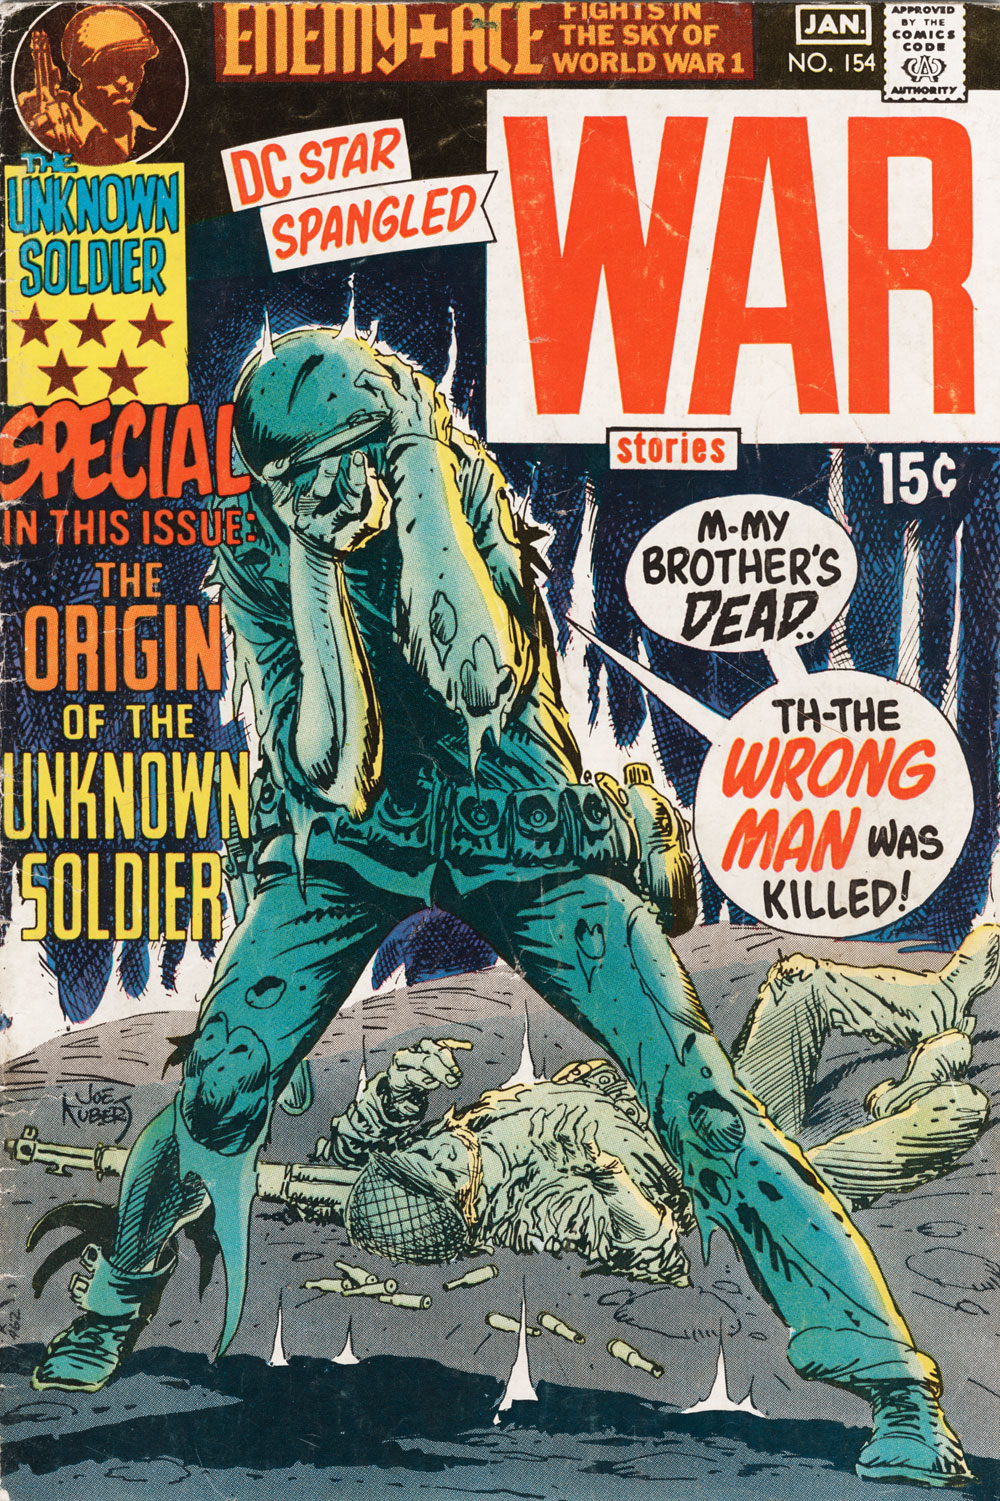 Star Spangled War Stories (1952) issue 154 - Page 1